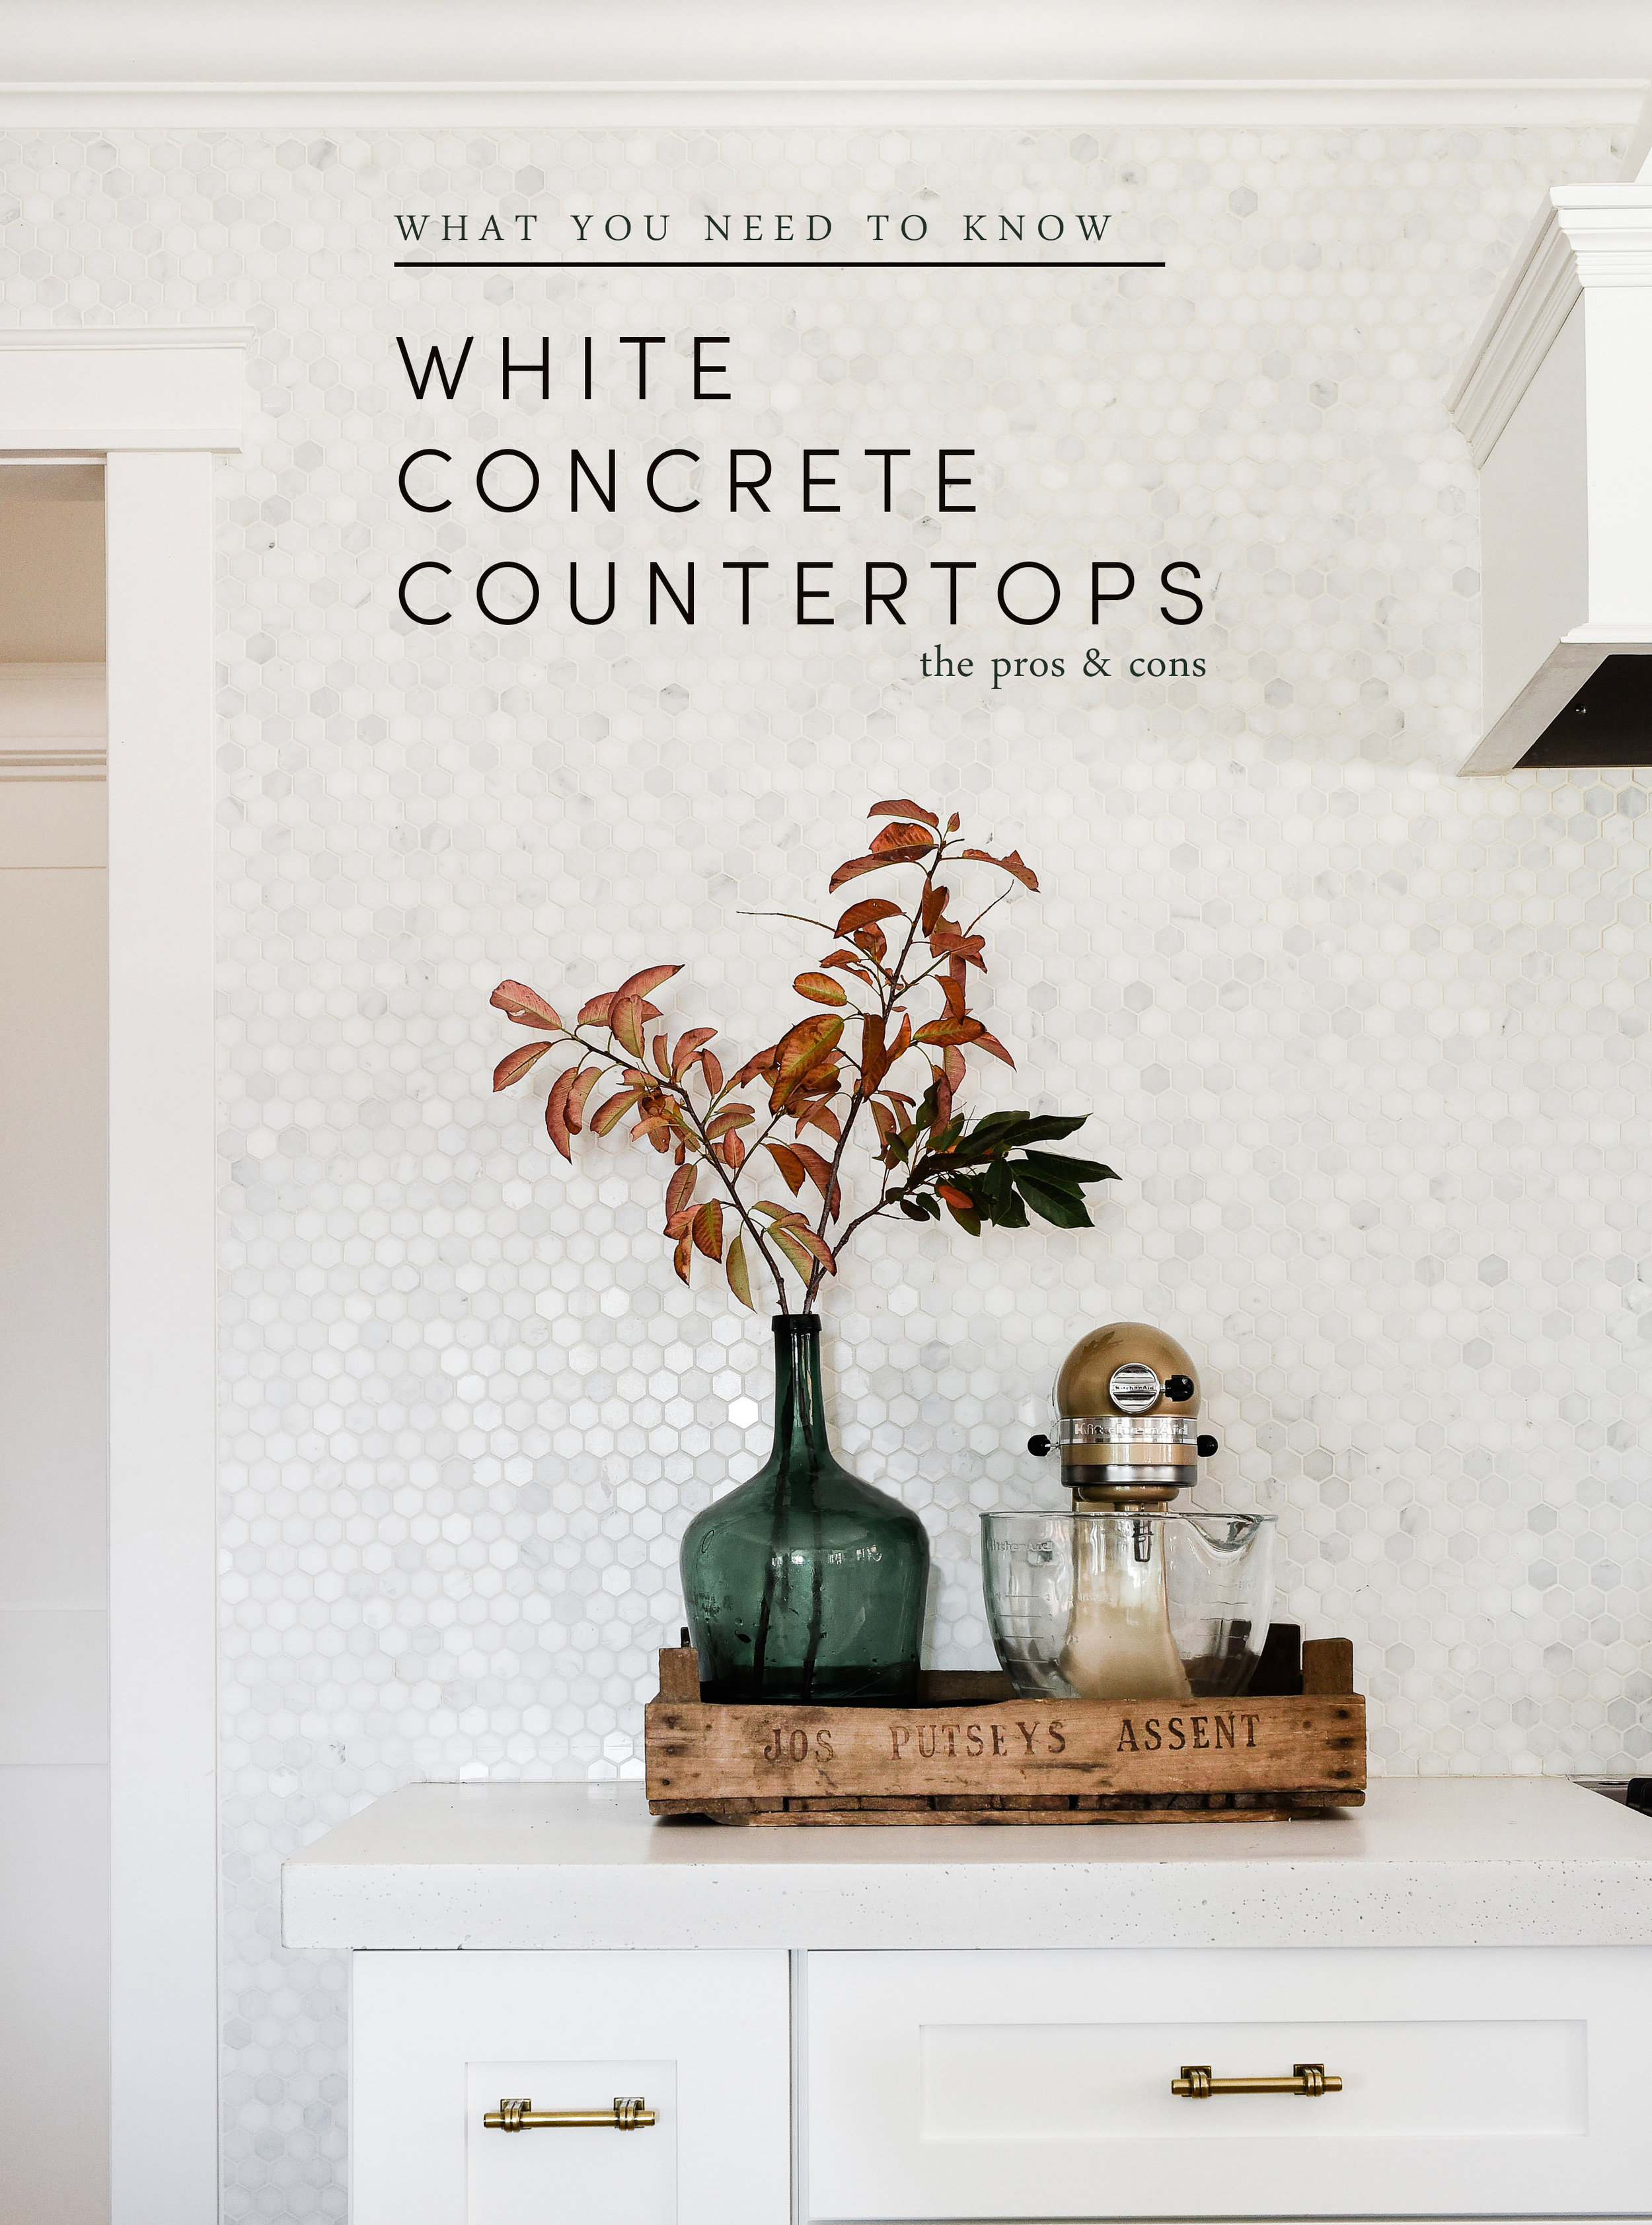 4 things you must know before pouring white concrete countertops in your home! #concretecountertops #farmhousekitchen